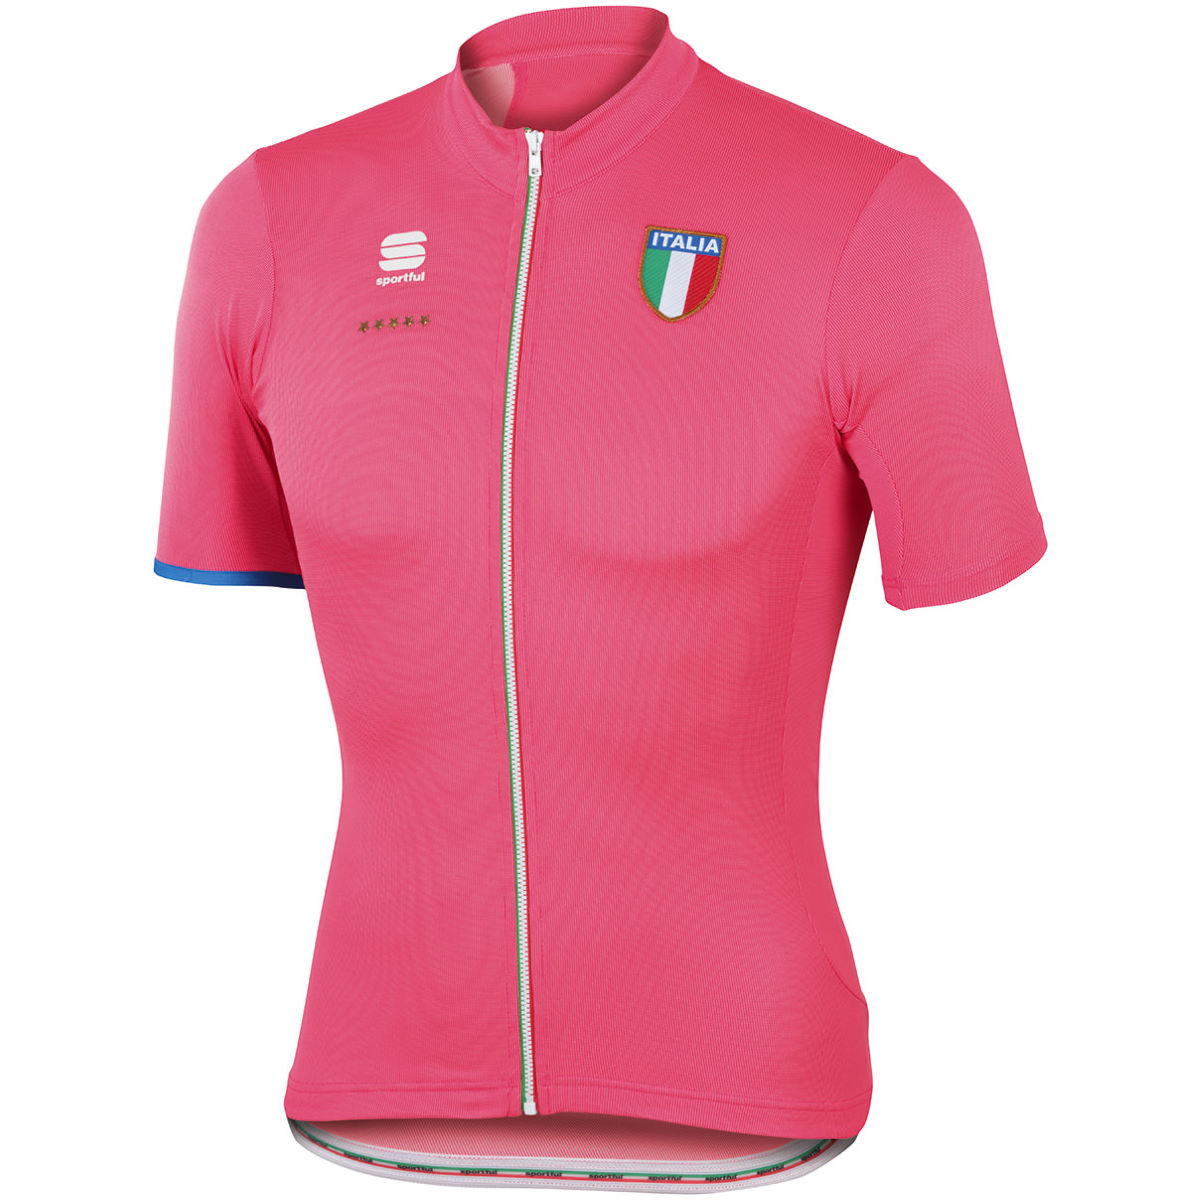 Maillot Sportful Italia CL - S Rose Maillots vélo à manches courtes